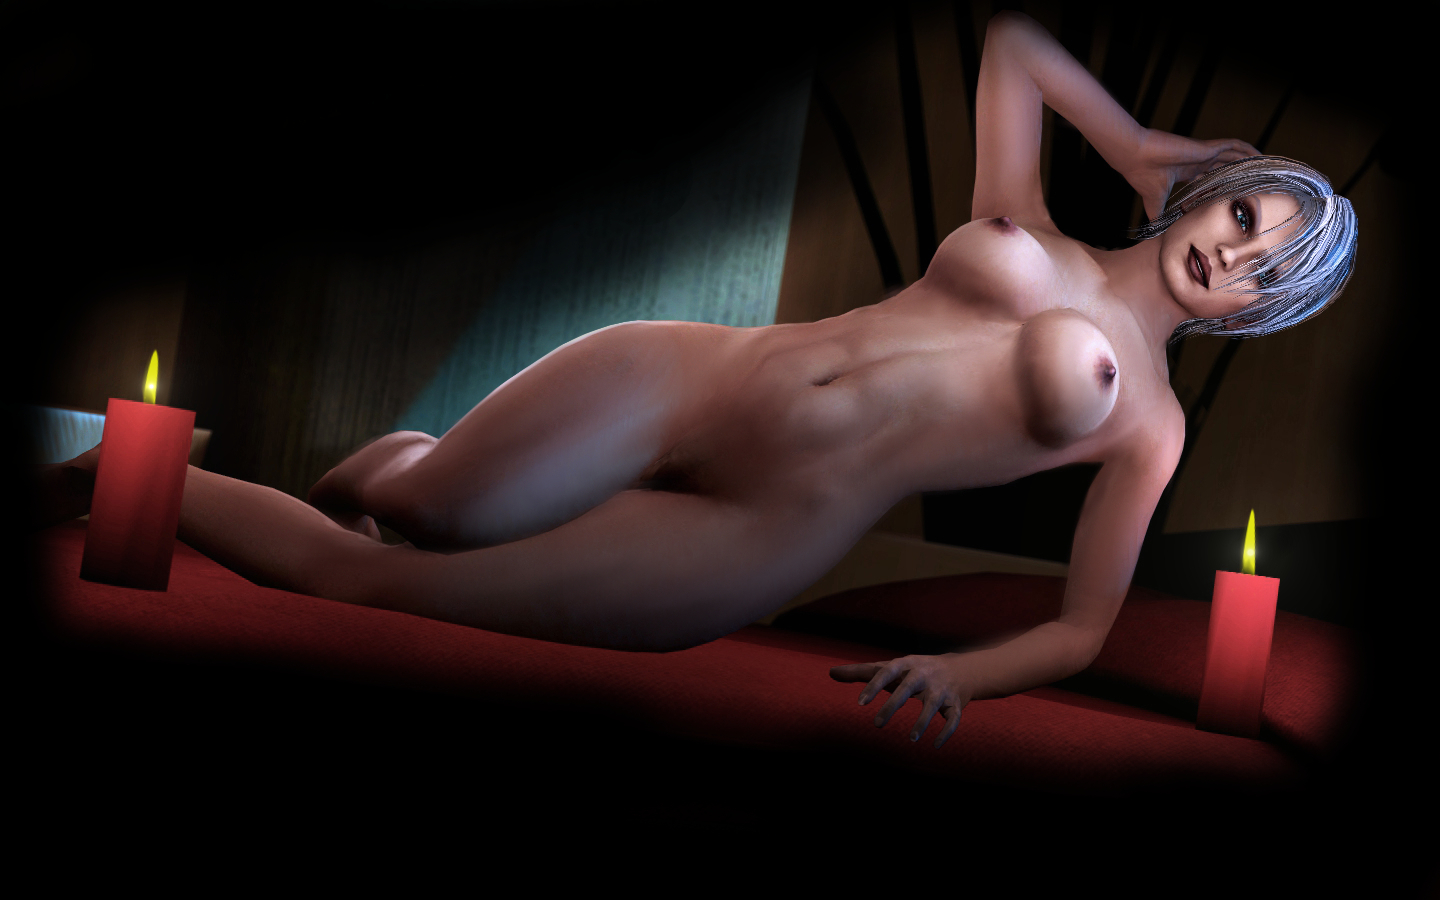 Soul calibur 4 nude adult photos